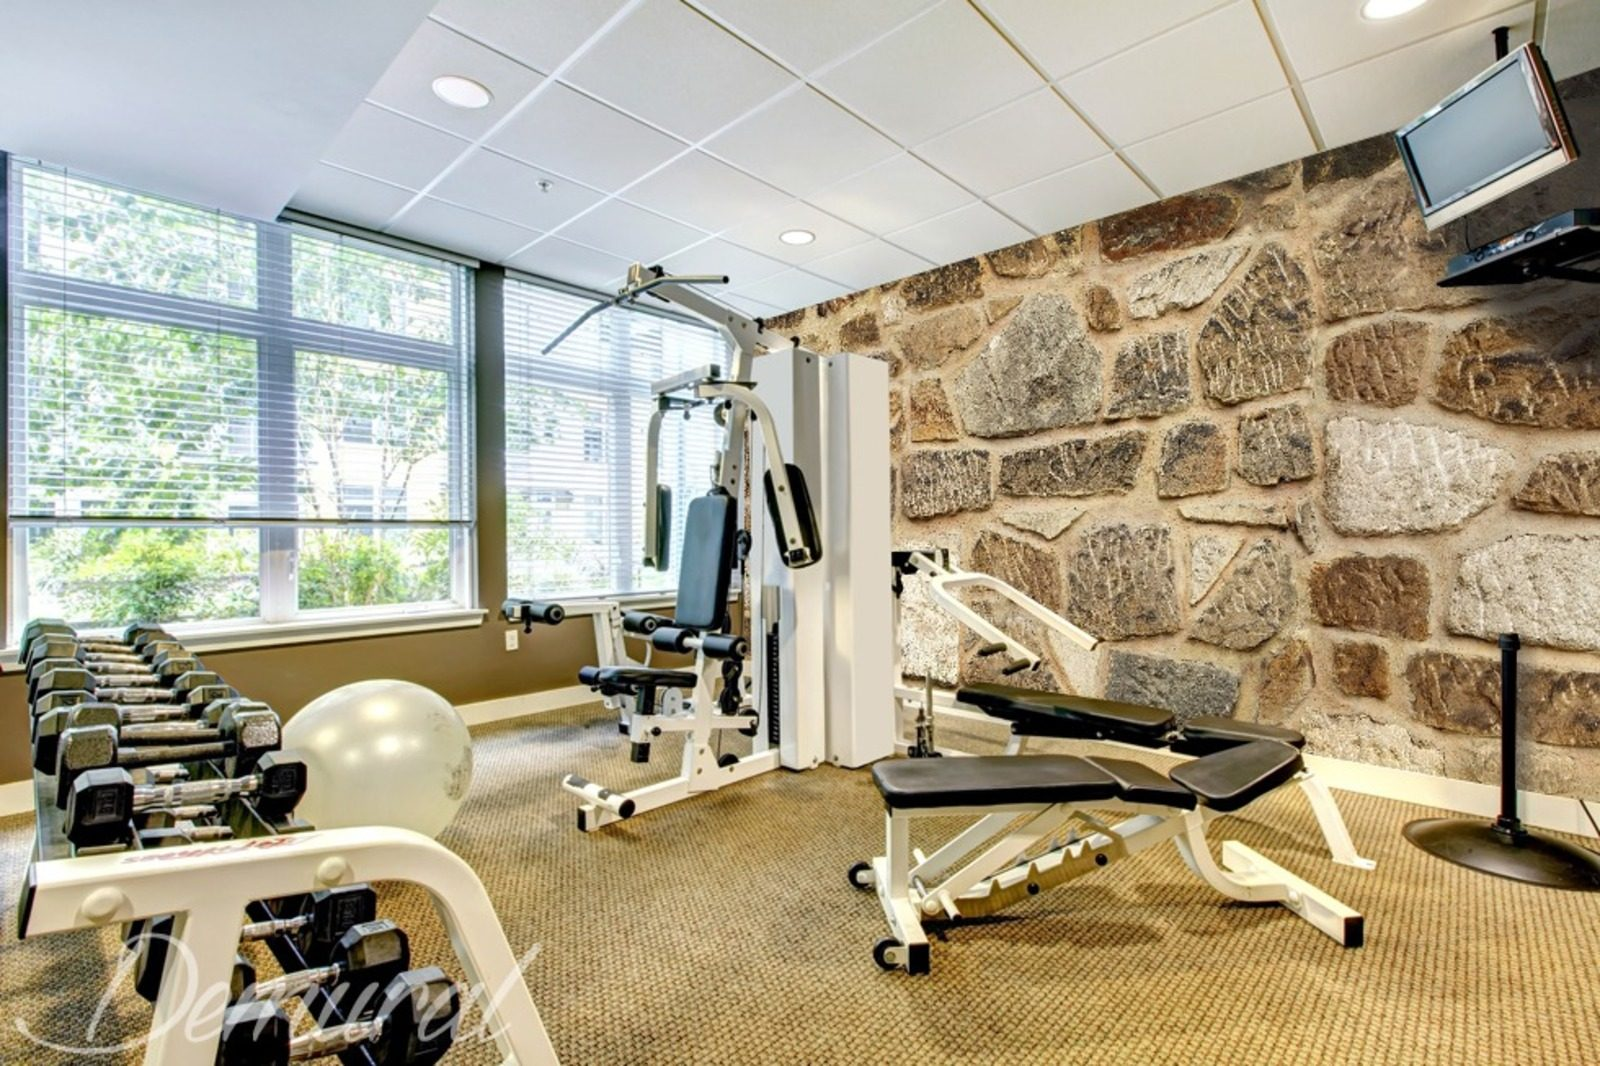 grace motivation elevation gym wallpaper mural